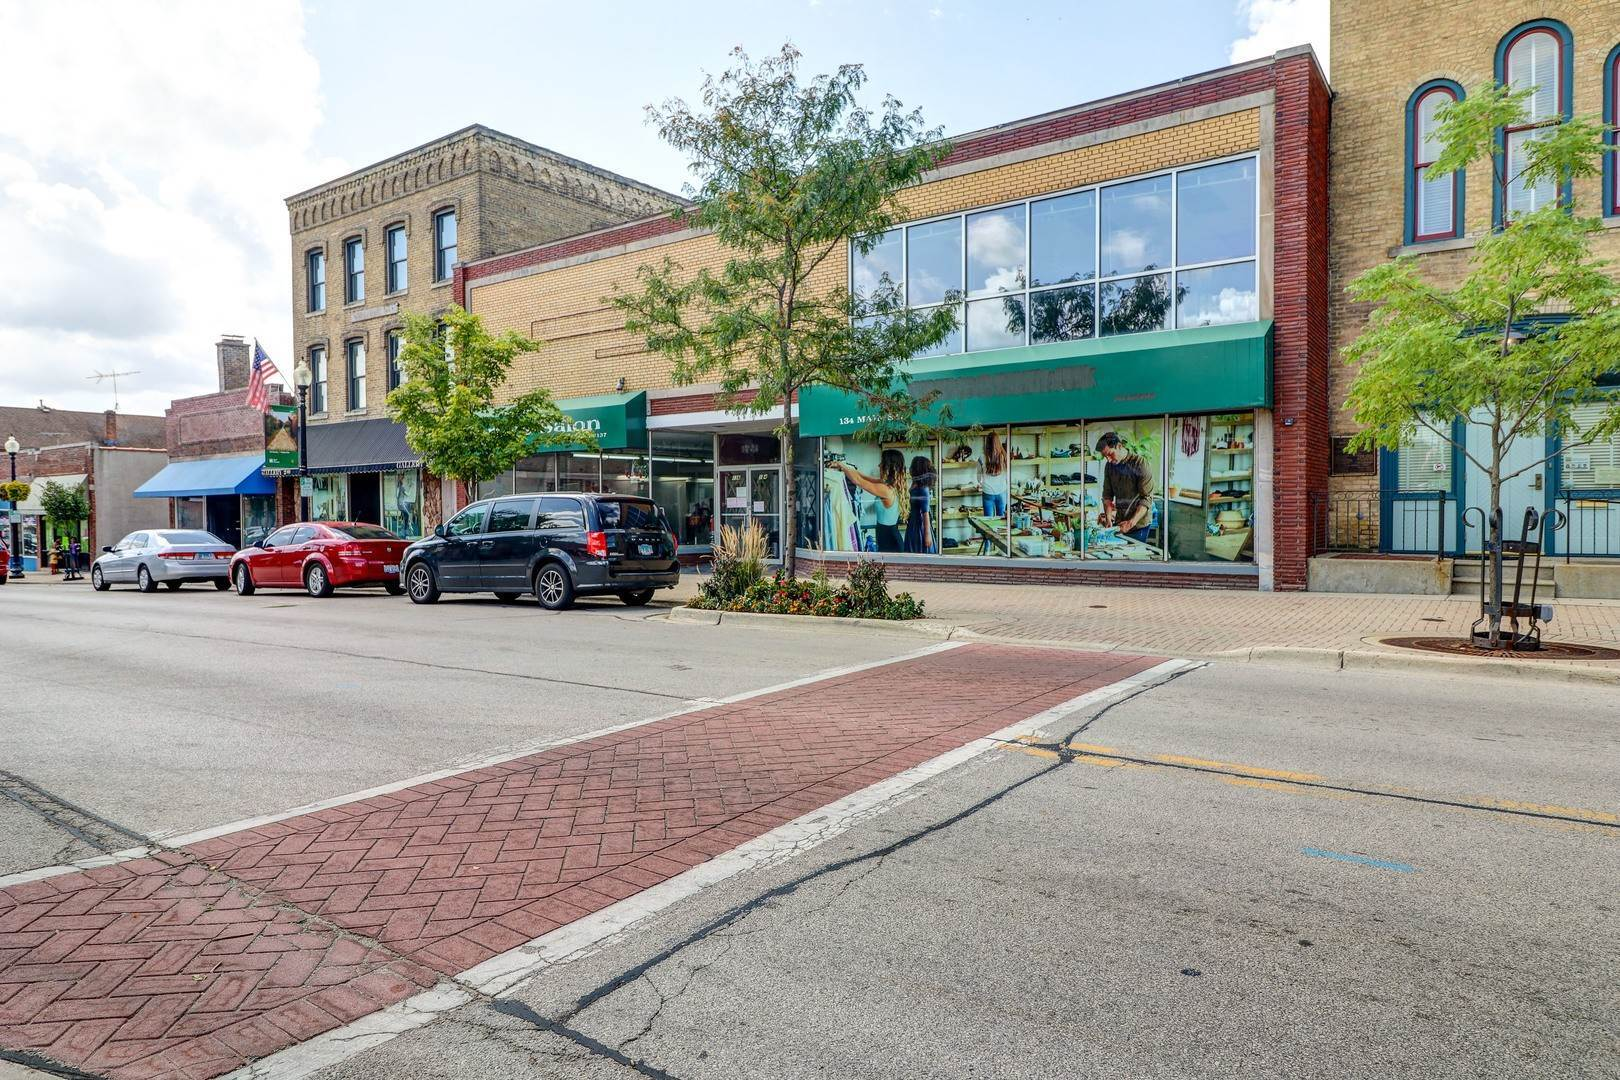 Commercial for Sale at 134 Main Street West Chicago, Illinois 60185 United States